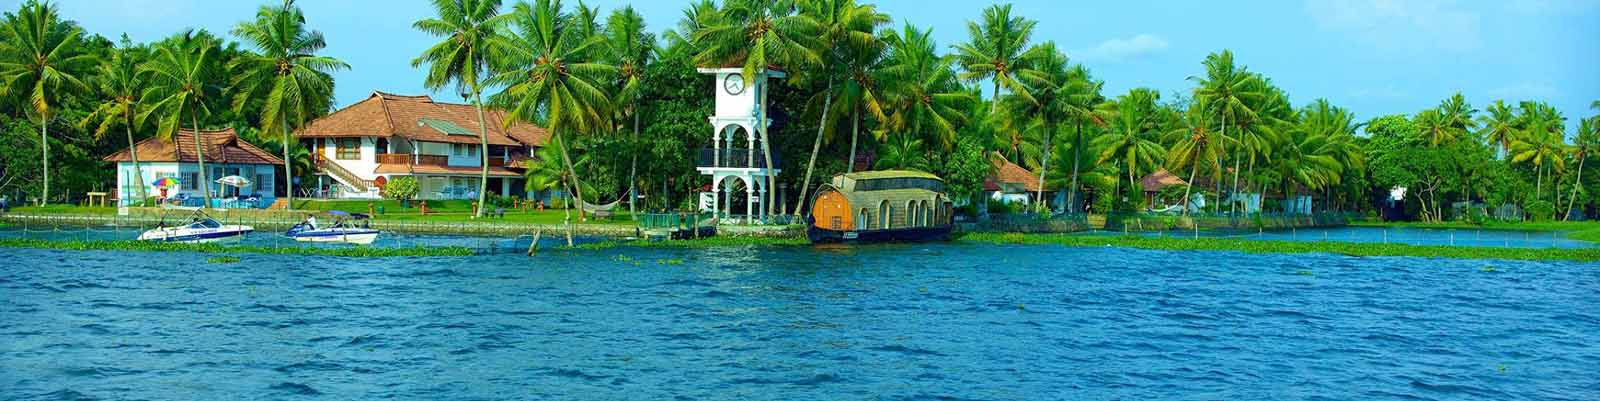 kerala tour and honeymoon packages from chennai